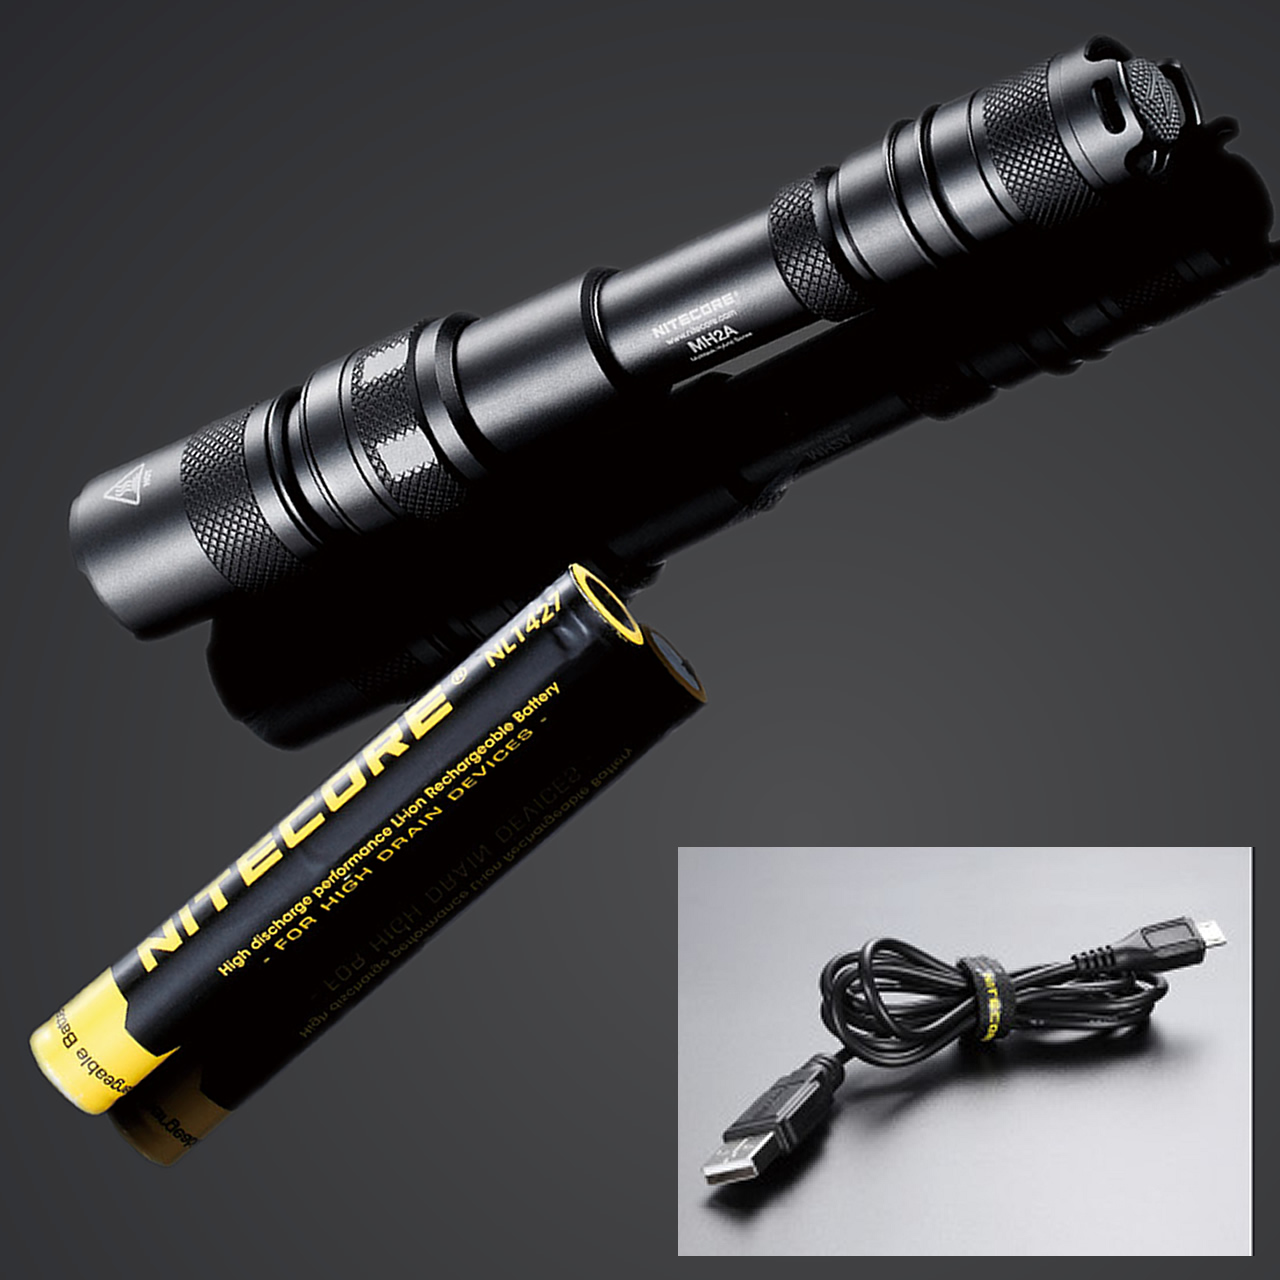 2017 NITECORE MH2A 600 Lumens XM-L U2 LED Rechargeable Flashlight Outdoor Search Rescue Tactical Torch + Battery + Free Shipping 2017 new nitecore p12 tactical flashlight cree xm l2 u2 led 1000lm 18650 outdoor camping pocket edc portable torch free shipping